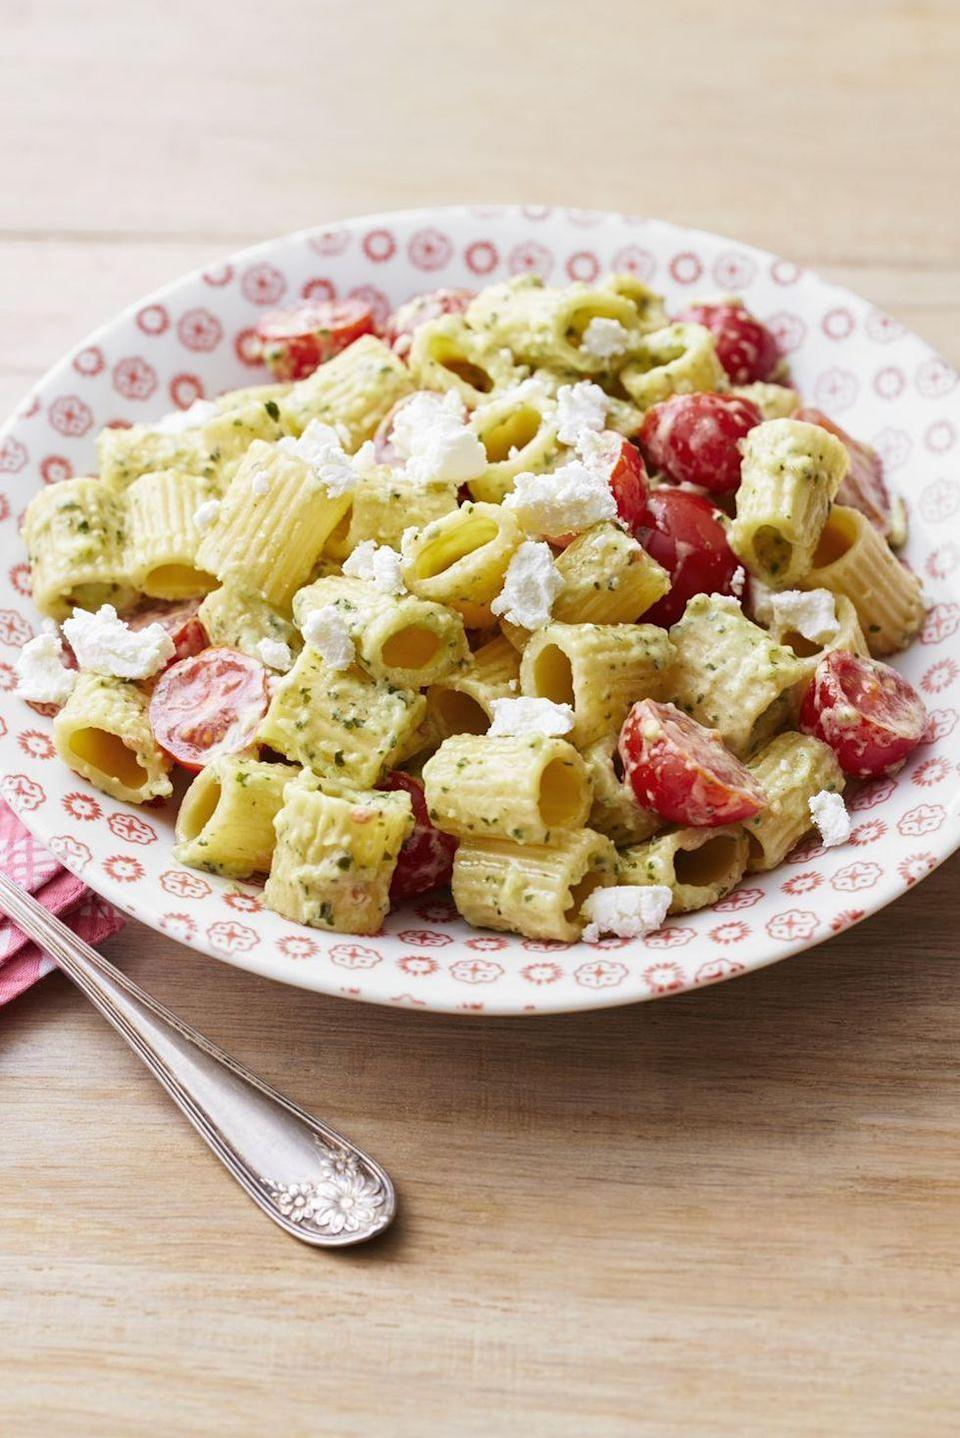 "<p>This creamy pasta dish is an ideal main course for any vegetarian moms out there. Throw in a side of garlic bread and earn even more brownie points.</p><p><strong><a href=""https://www.thepioneerwoman.com/food-cooking/recipes/a32378514/rigatoni-with-pesto-cream-sauce-recipe/"" rel=""nofollow noopener"" target=""_blank"" data-ylk=""slk:Get the recipe"" class=""link rapid-noclick-resp"">Get the recipe</a>.</strong></p><p><strong><a class=""link rapid-noclick-resp"" href=""https://go.redirectingat.com?id=74968X1596630&url=https%3A%2F%2Fwww.walmart.com%2Fbrowse%2Fhome%2Fthe-pioneer-woman-bowls%2F4044_623679_3480962_3544662&sref=https%3A%2F%2Fwww.thepioneerwoman.com%2Ffood-cooking%2Fmeals-menus%2Fg35589850%2Fmothers-day-dinner-ideas%2F"" rel=""nofollow noopener"" target=""_blank"" data-ylk=""slk:SHOP PASTA BOWLS"">SHOP PASTA BOWLS</a></strong></p>"